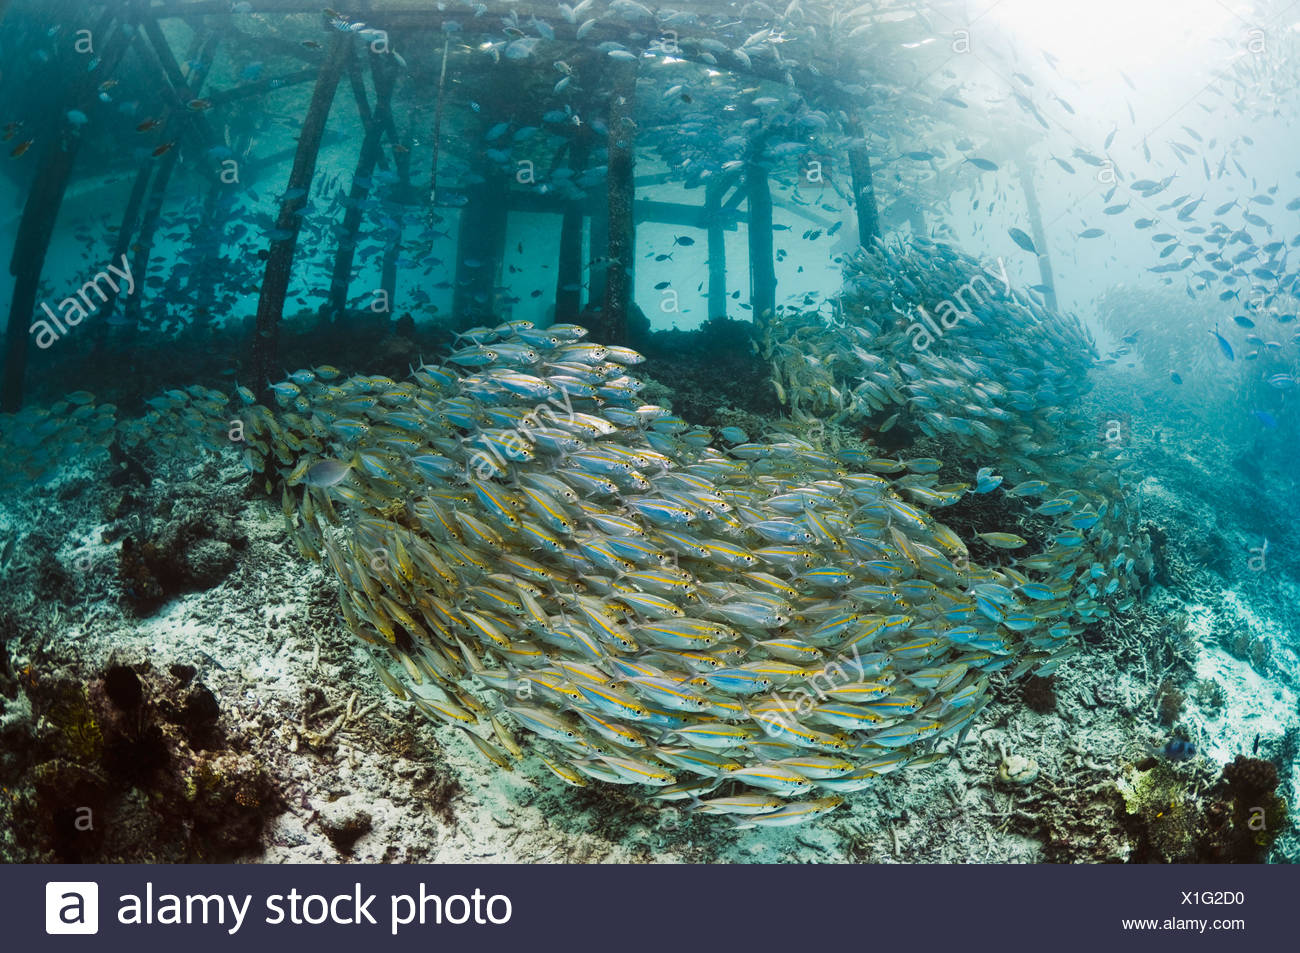 Bigeye scad school with jetty on coral reef.  Misool, Raja Empat, West Papua, Indonesia. - Stock Image